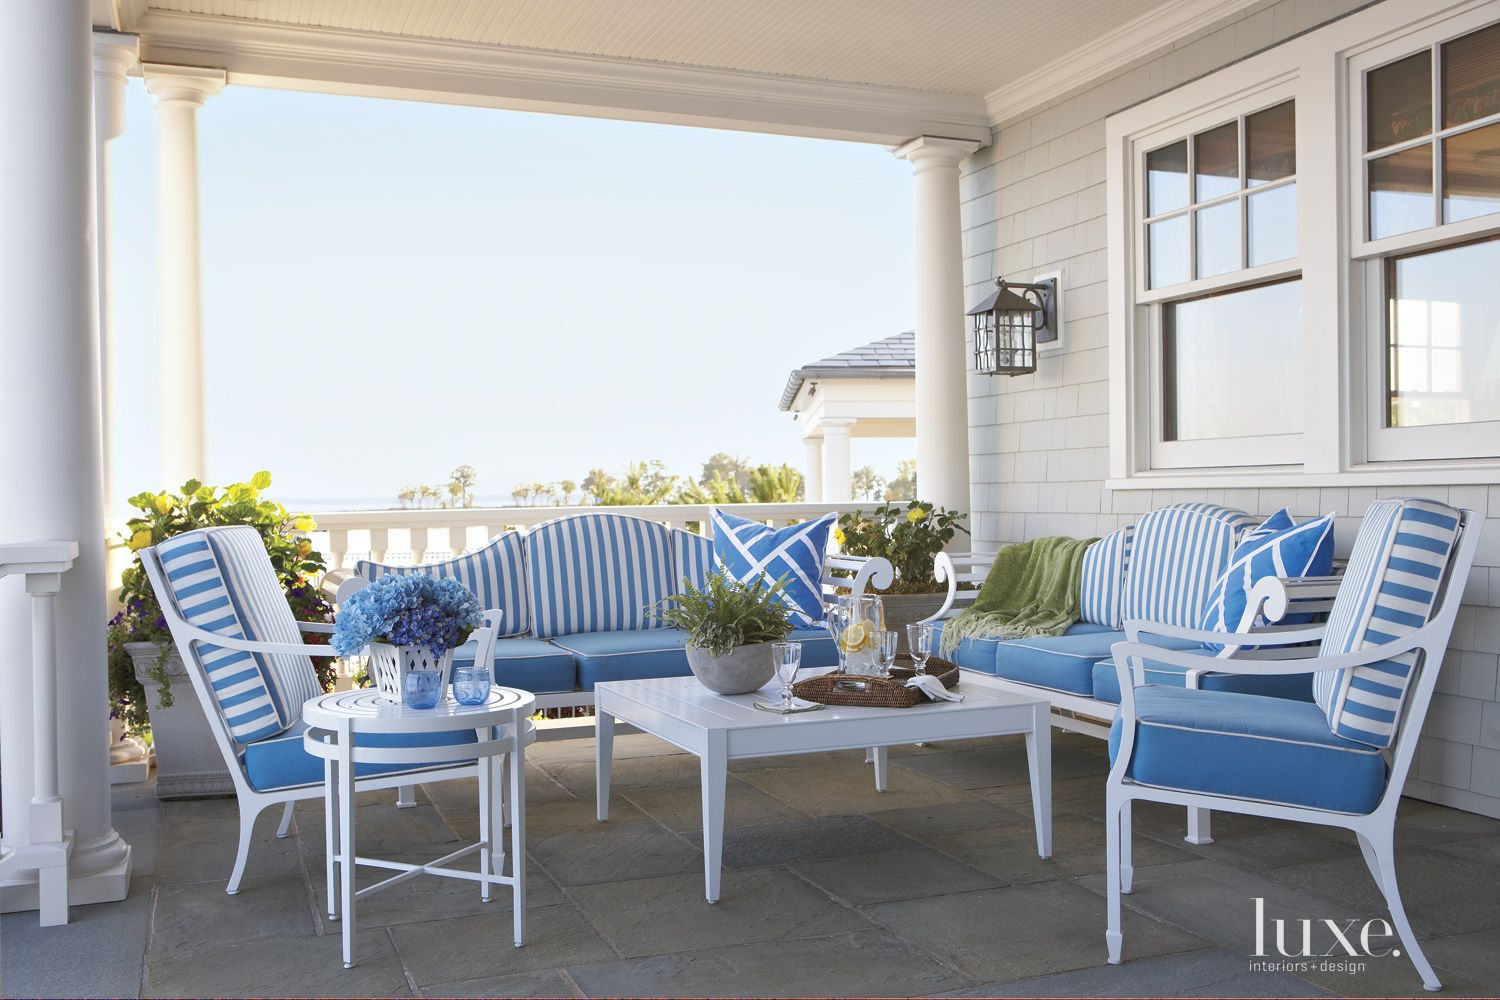 Traditional White Outdoor Seating Area with Striped Cushions